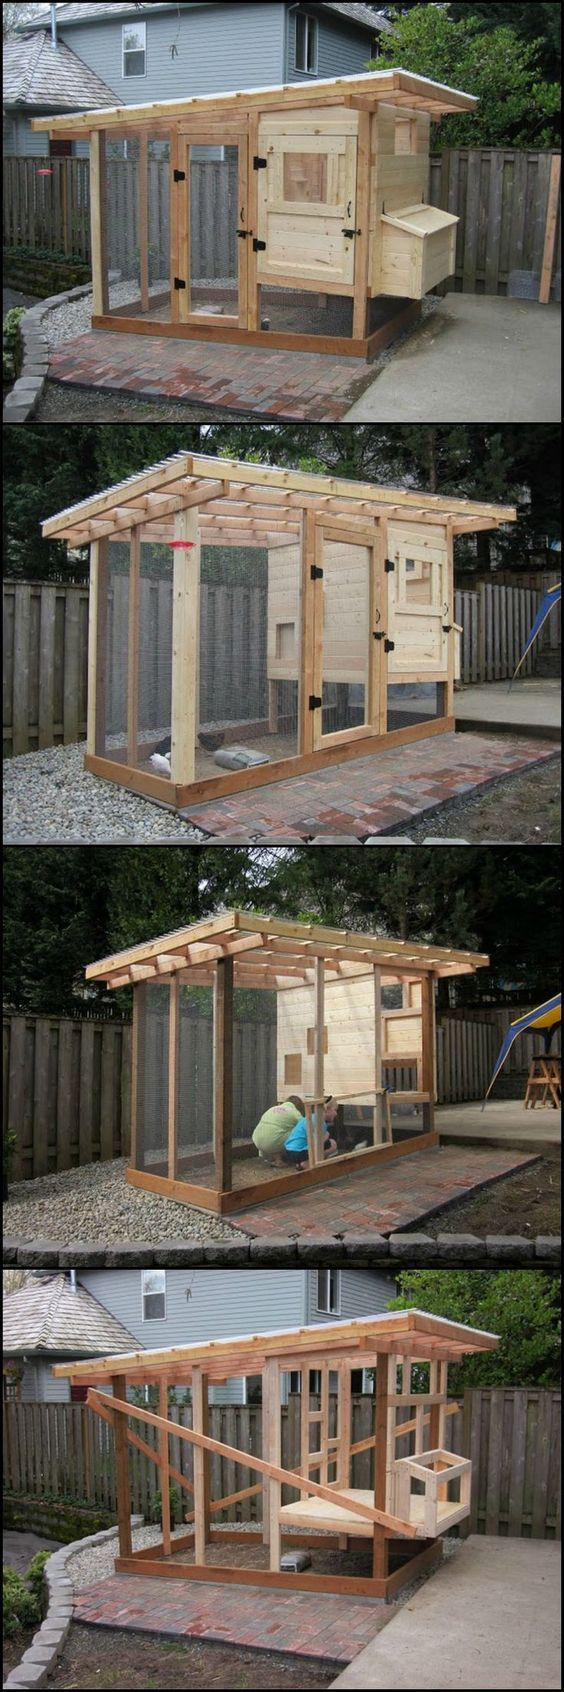 How To Build An Inexpensive Chicken Coop http://theownerbuildernetwork.co/hlcn Keep your chooks safe from predatory animals and get free eggs in return with this chicken coop you can build right in your backyard.: